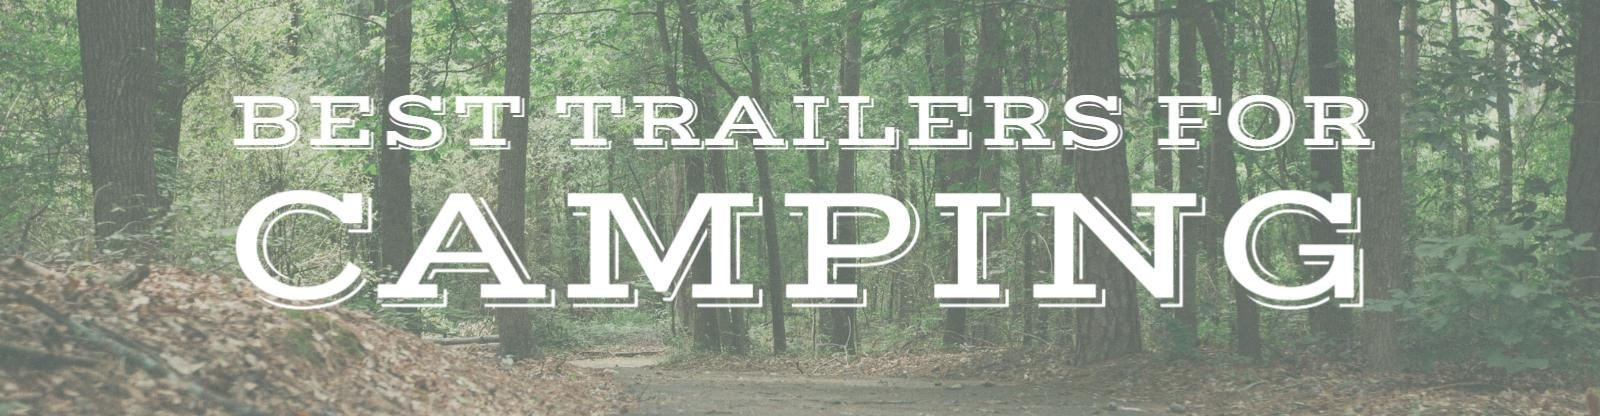 Find the best trailers to take camping